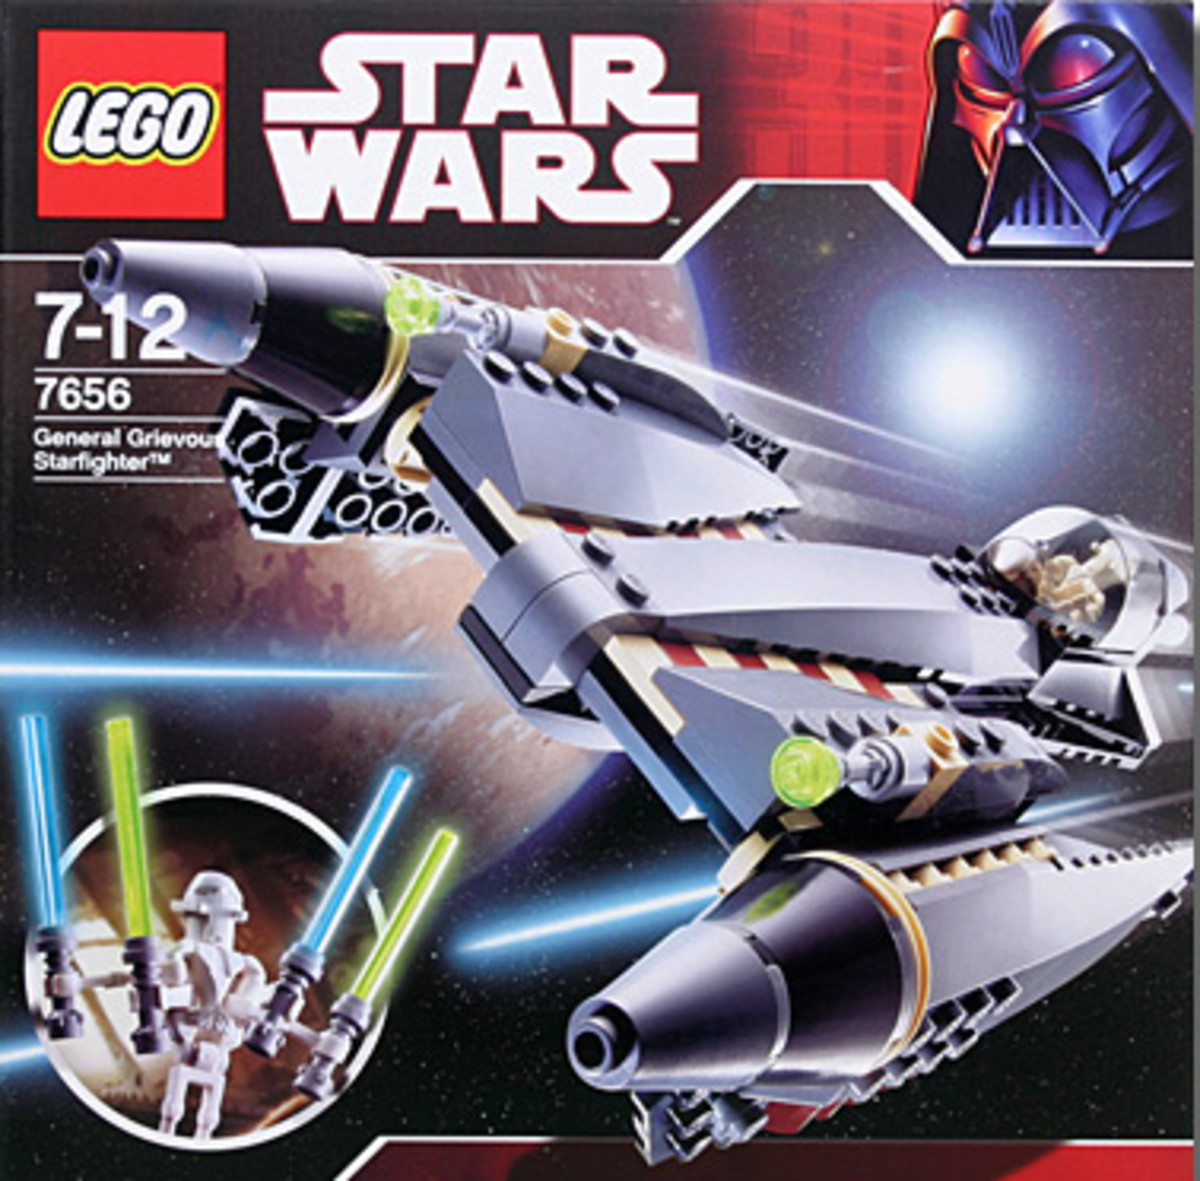 LEGO Star Wars General Grievous Starfighter 7656 Box